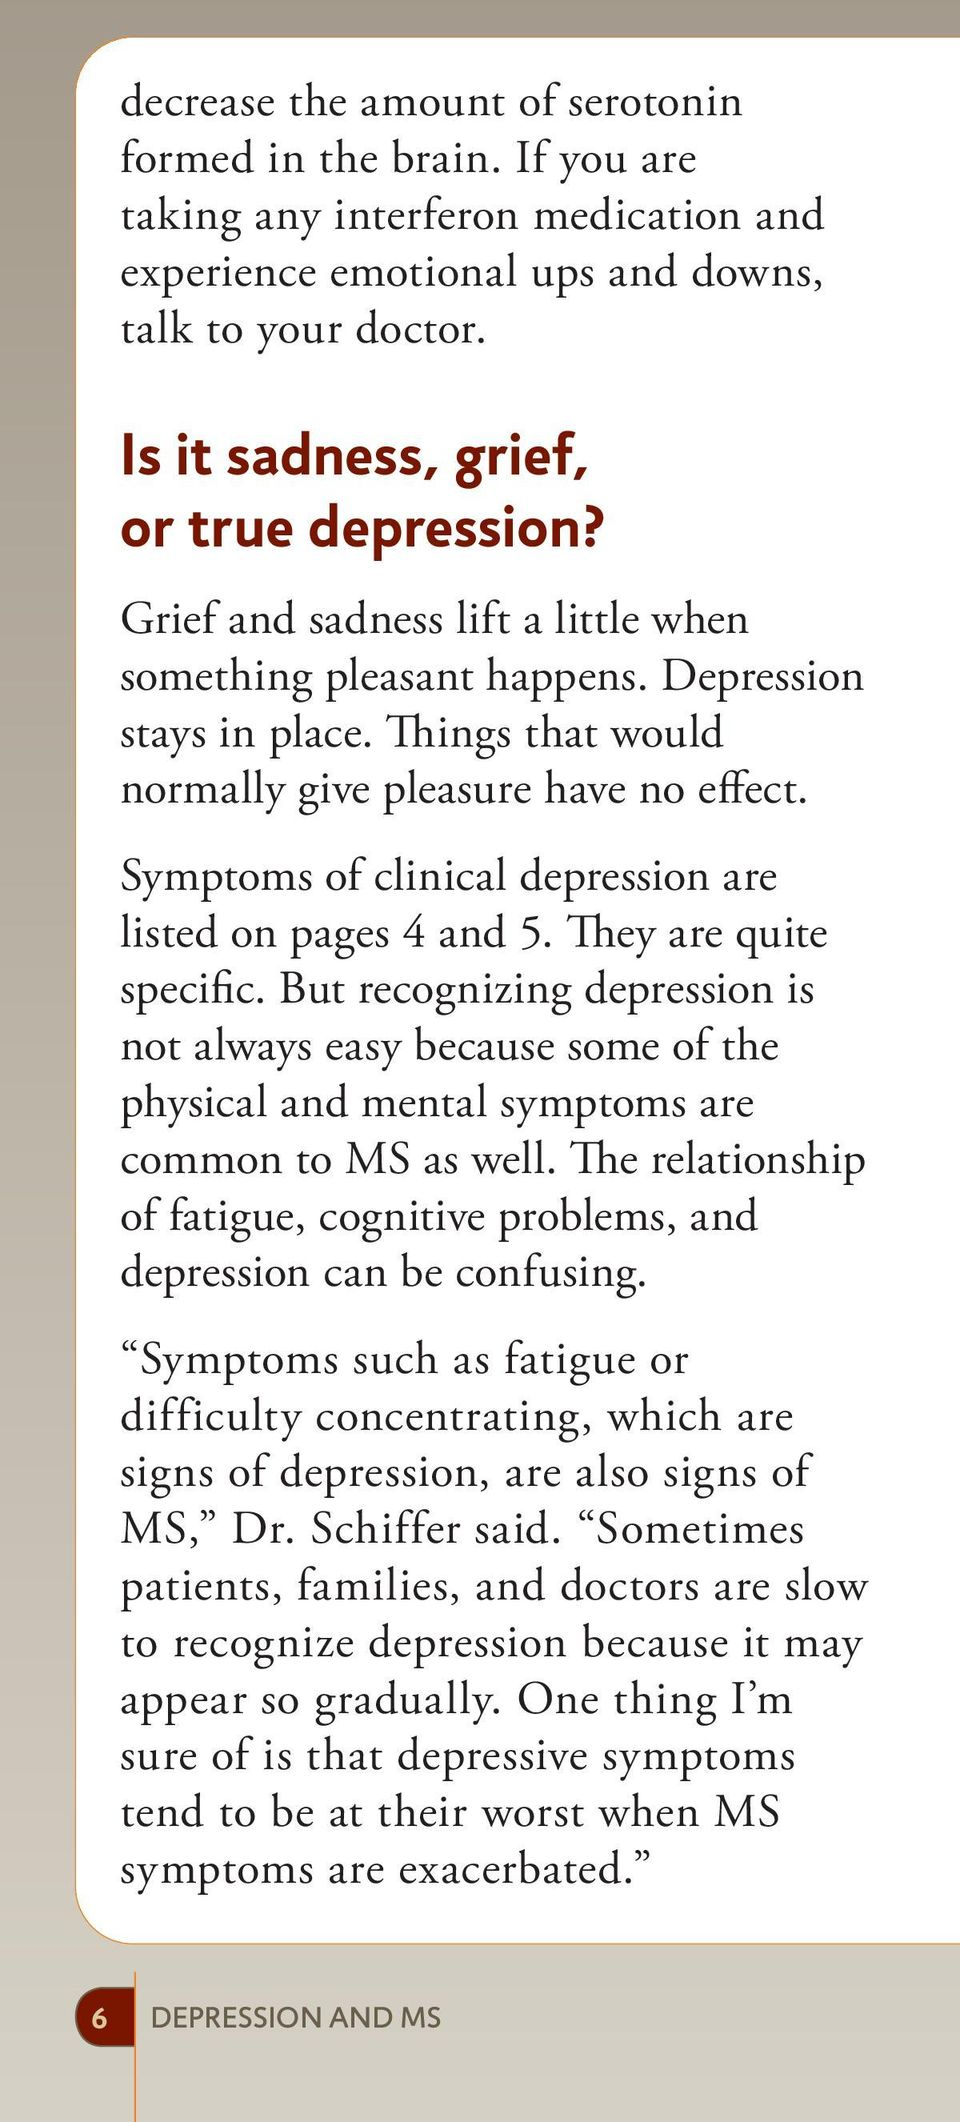 Symptoms of clinical depression are listed on pages 4 and 5. They are quite specific.